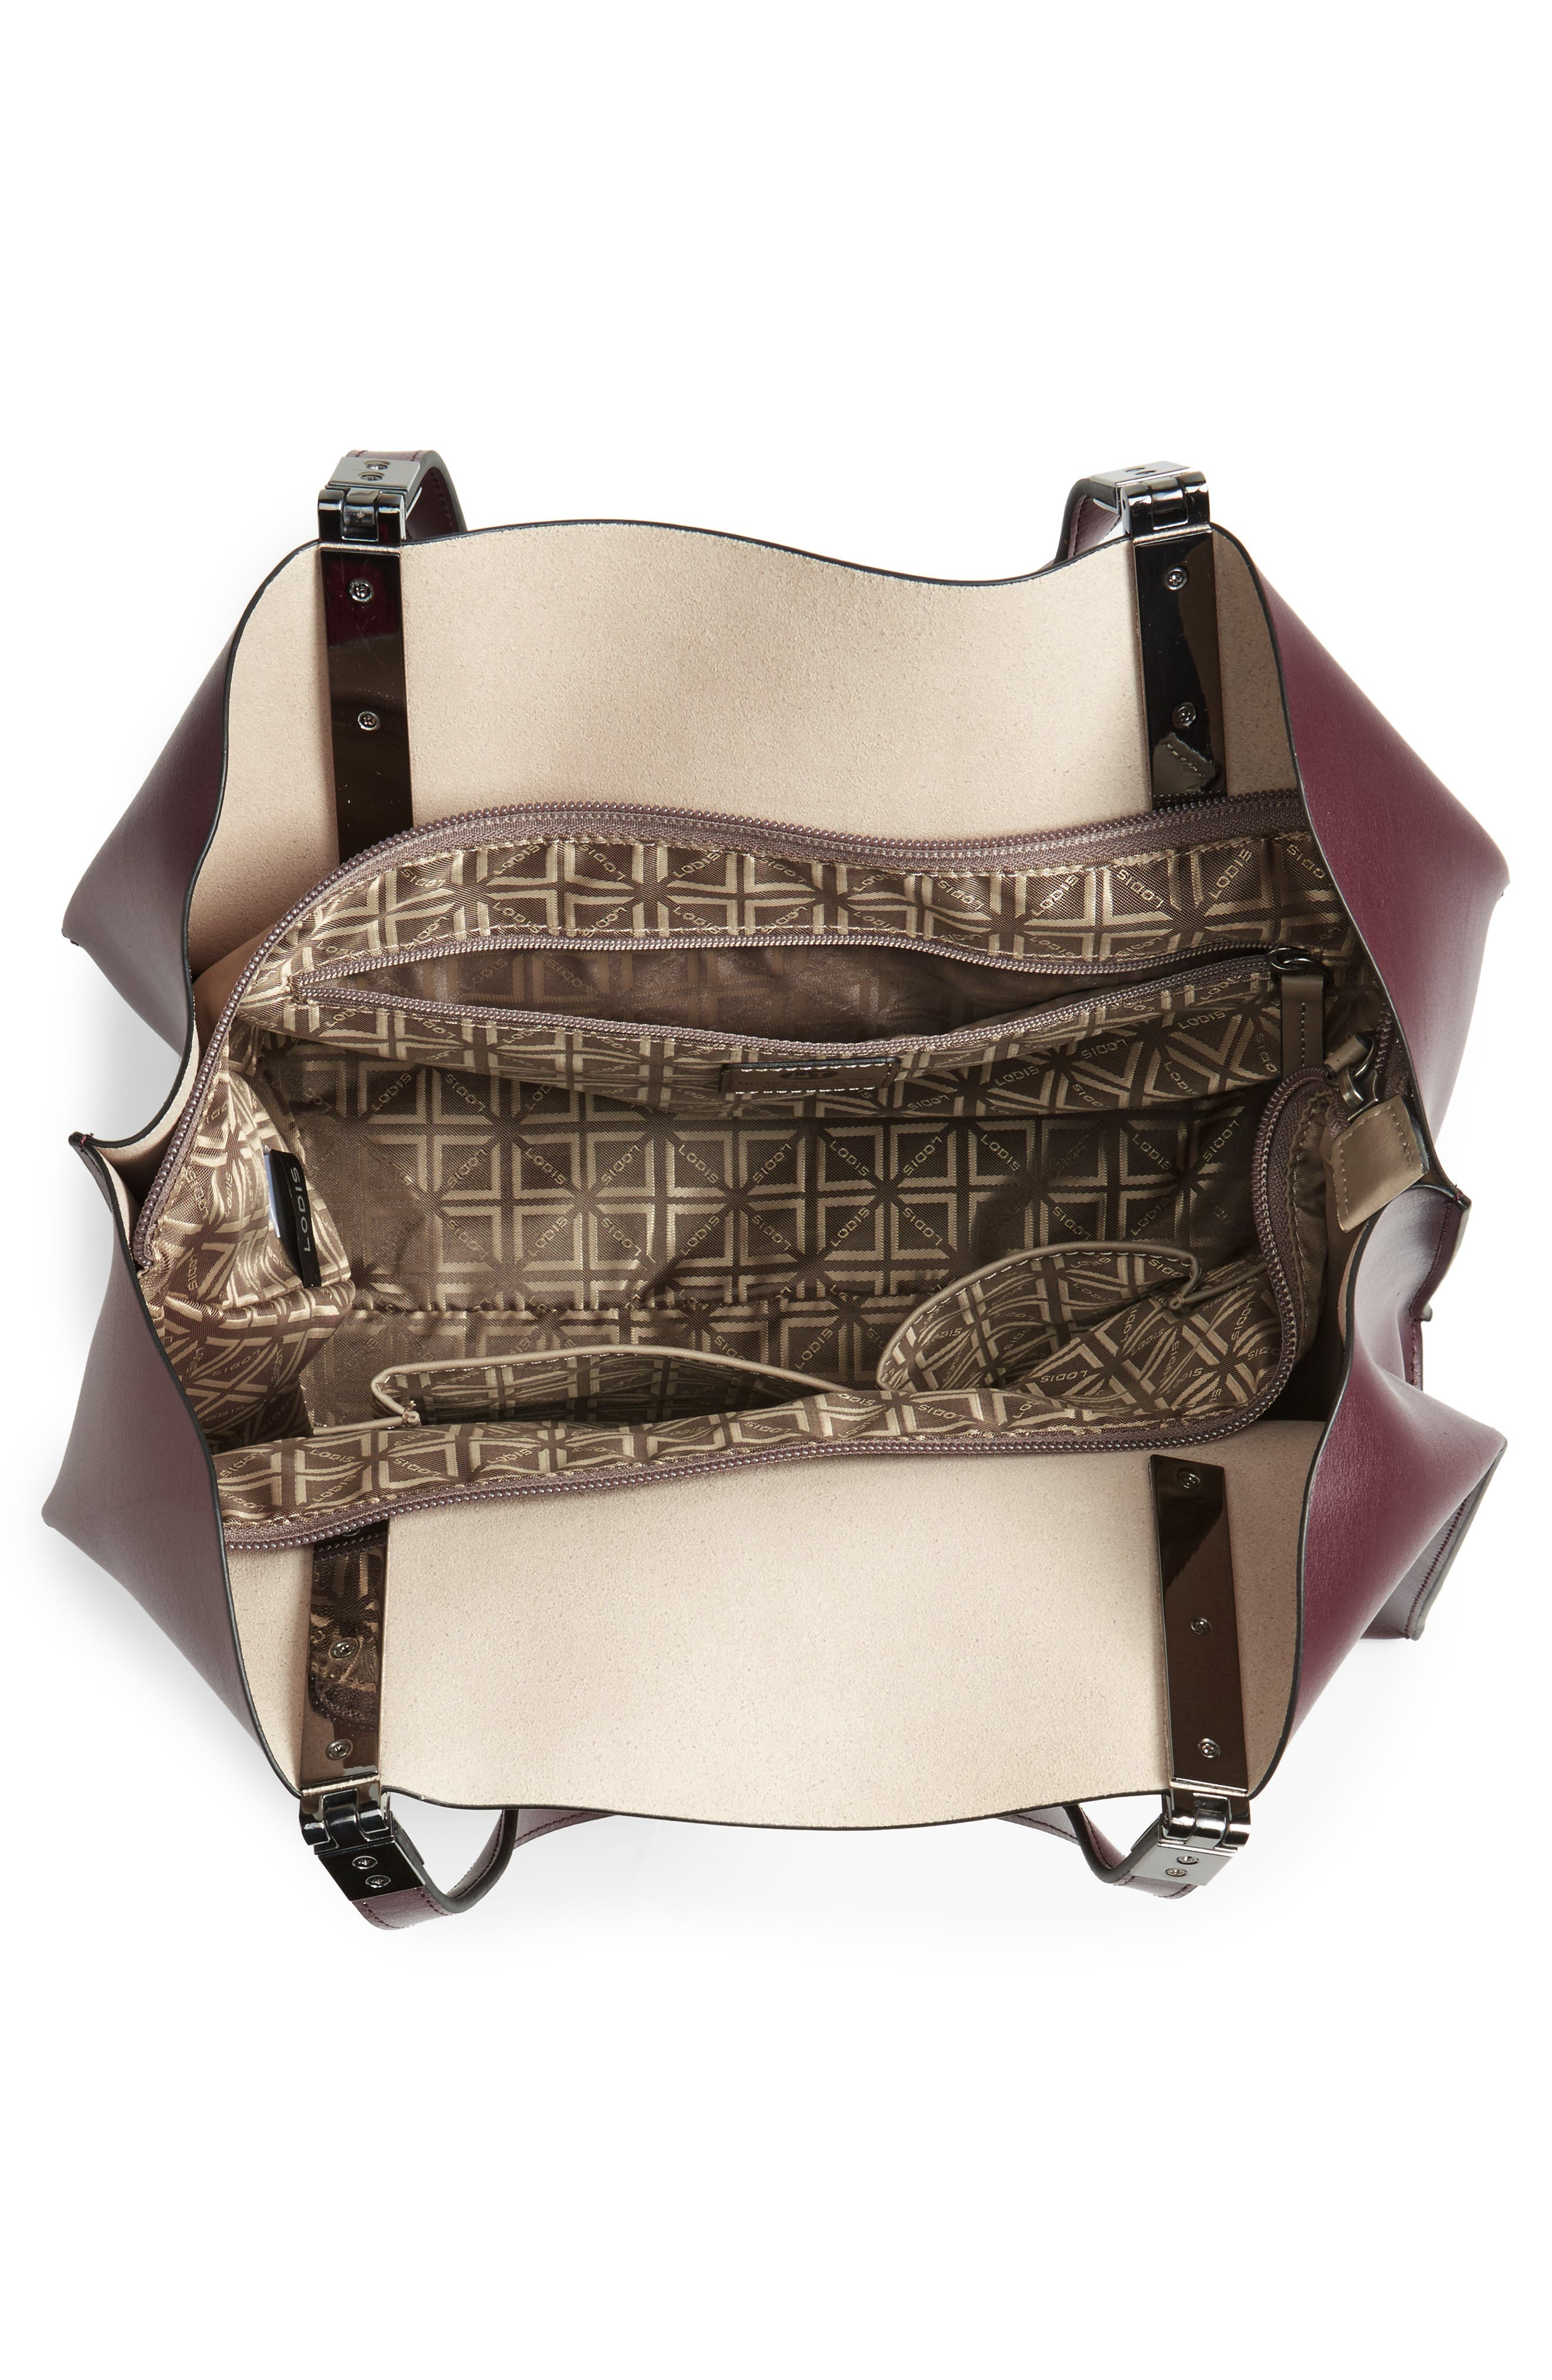 LODIS Silicon Valley Collection Under Lock & Key - Anita RFID East/West Leather Satchel,                             Alternate thumbnail 4, color,                             Chianti/ Taupe